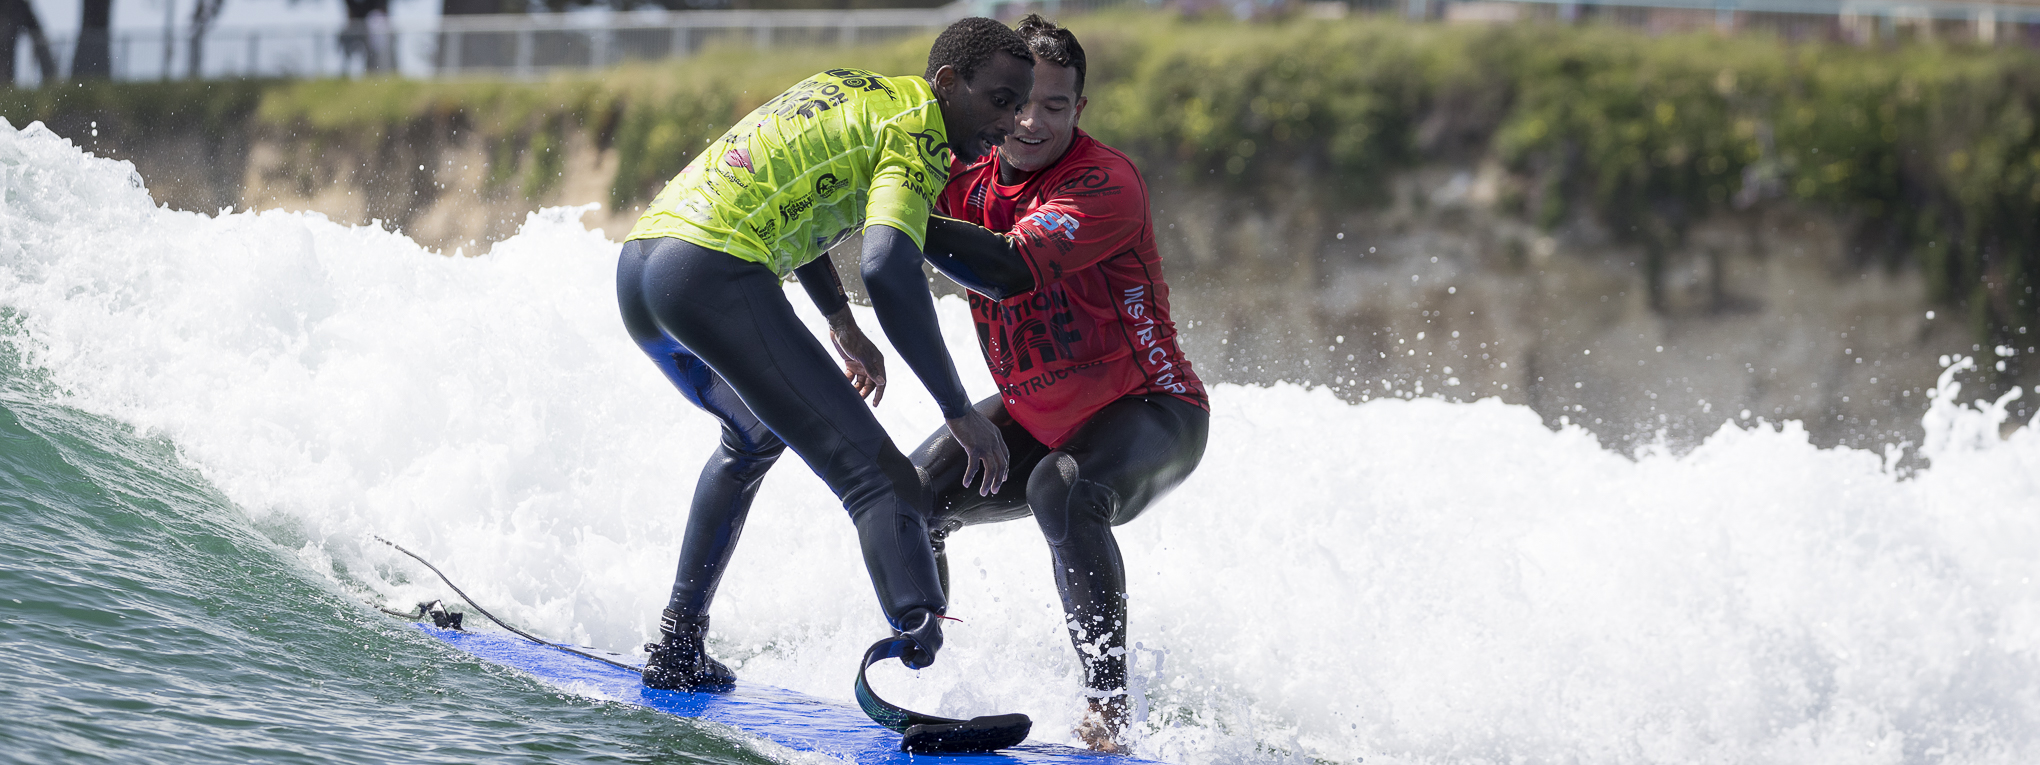 Surf instructor helping a military veteran